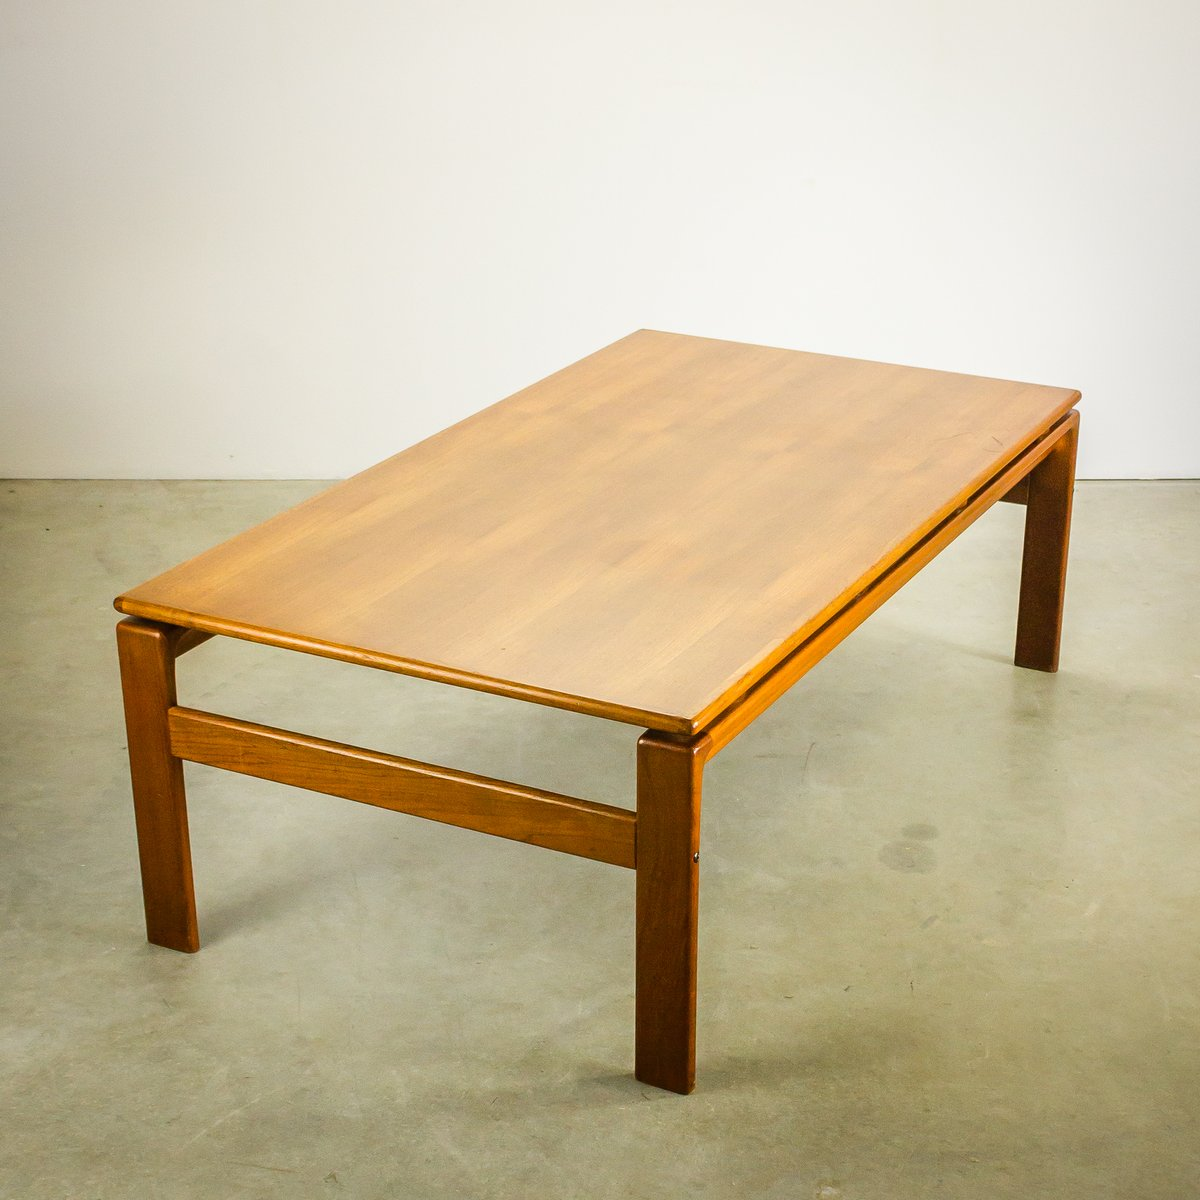 Danish teak coffee table from komfort 1970s for sale at pamono danish teak coffee table from komfort 1970s geotapseo Images